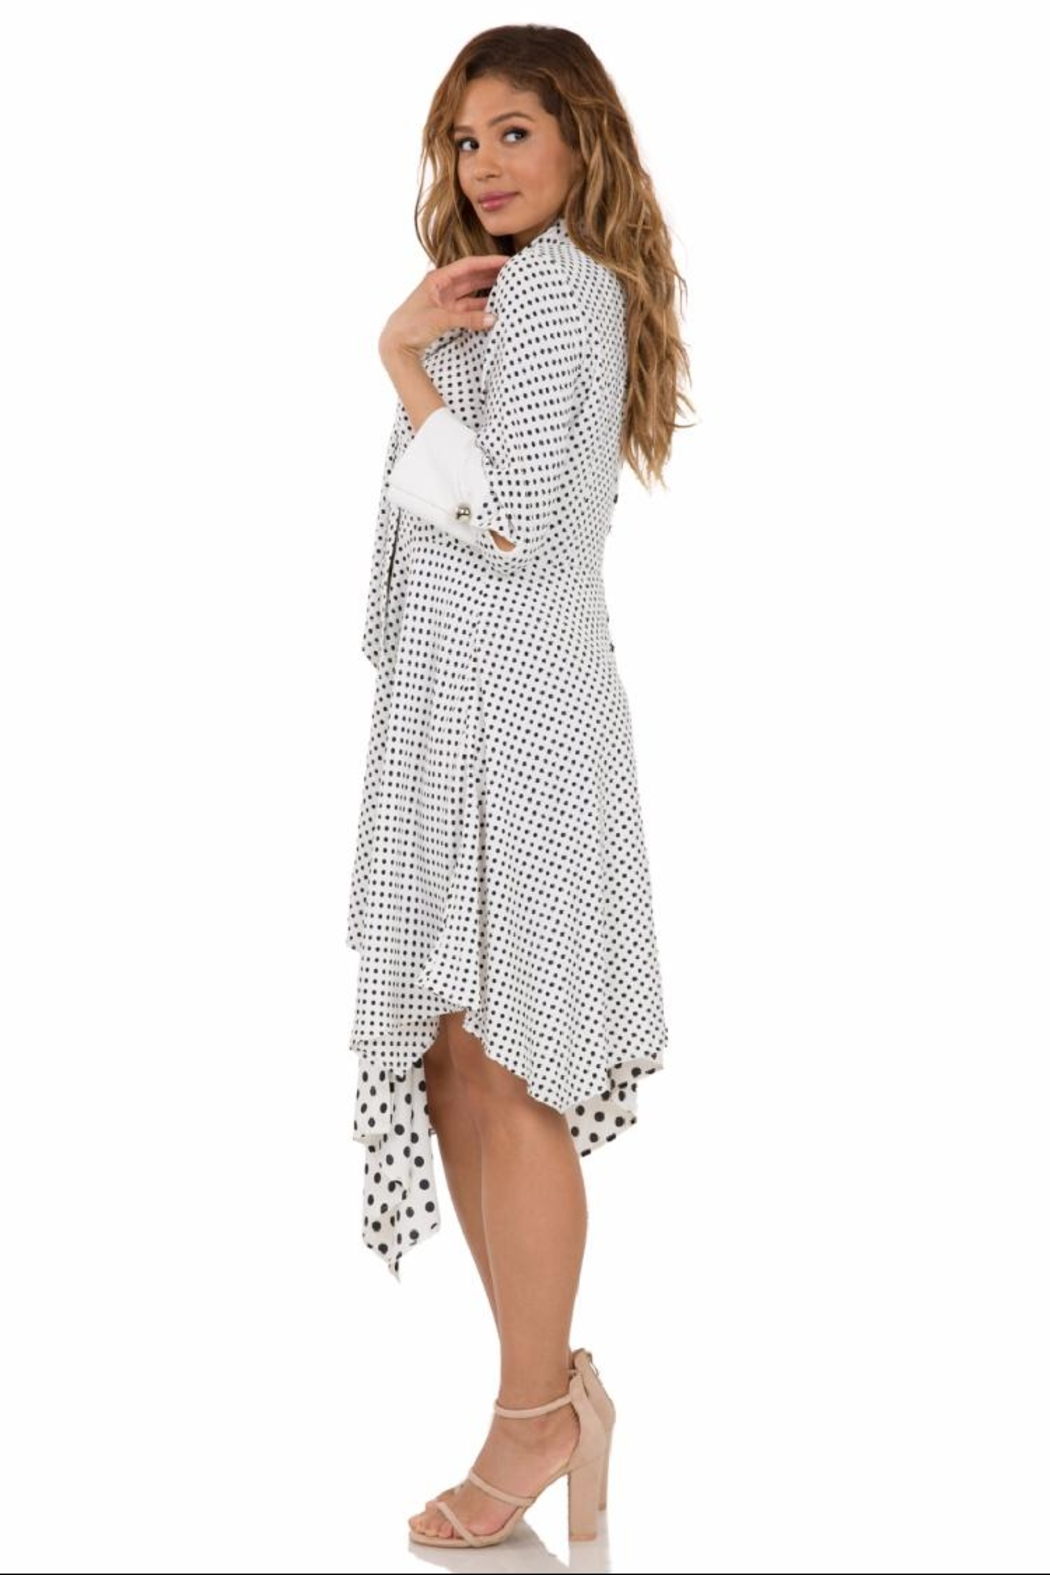 cq by cq Long-Sleeve Polkadot Dress - Front Full Image